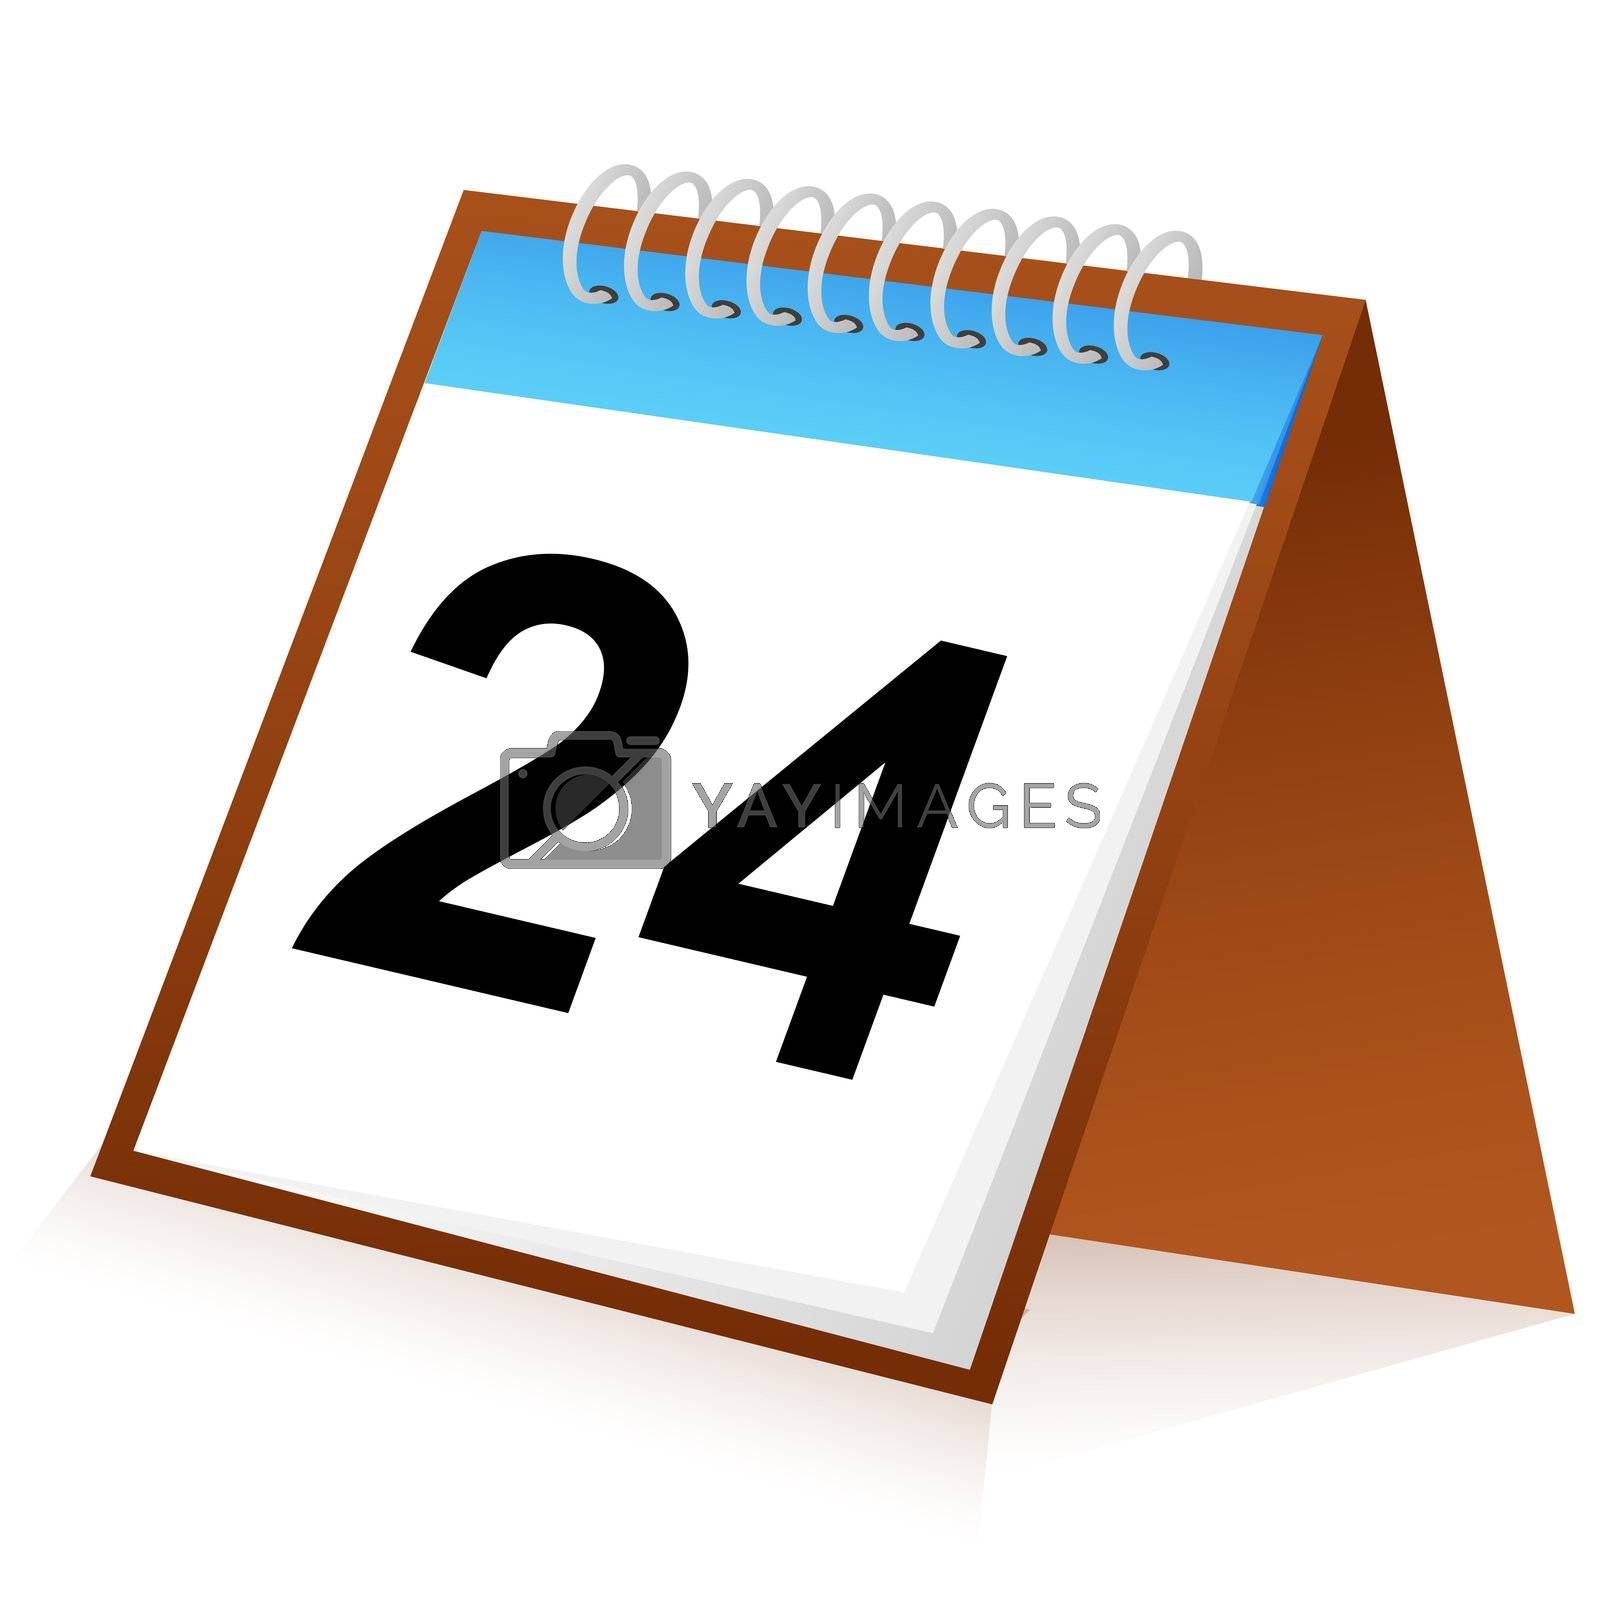 Royalty free image of calender sign by get4net